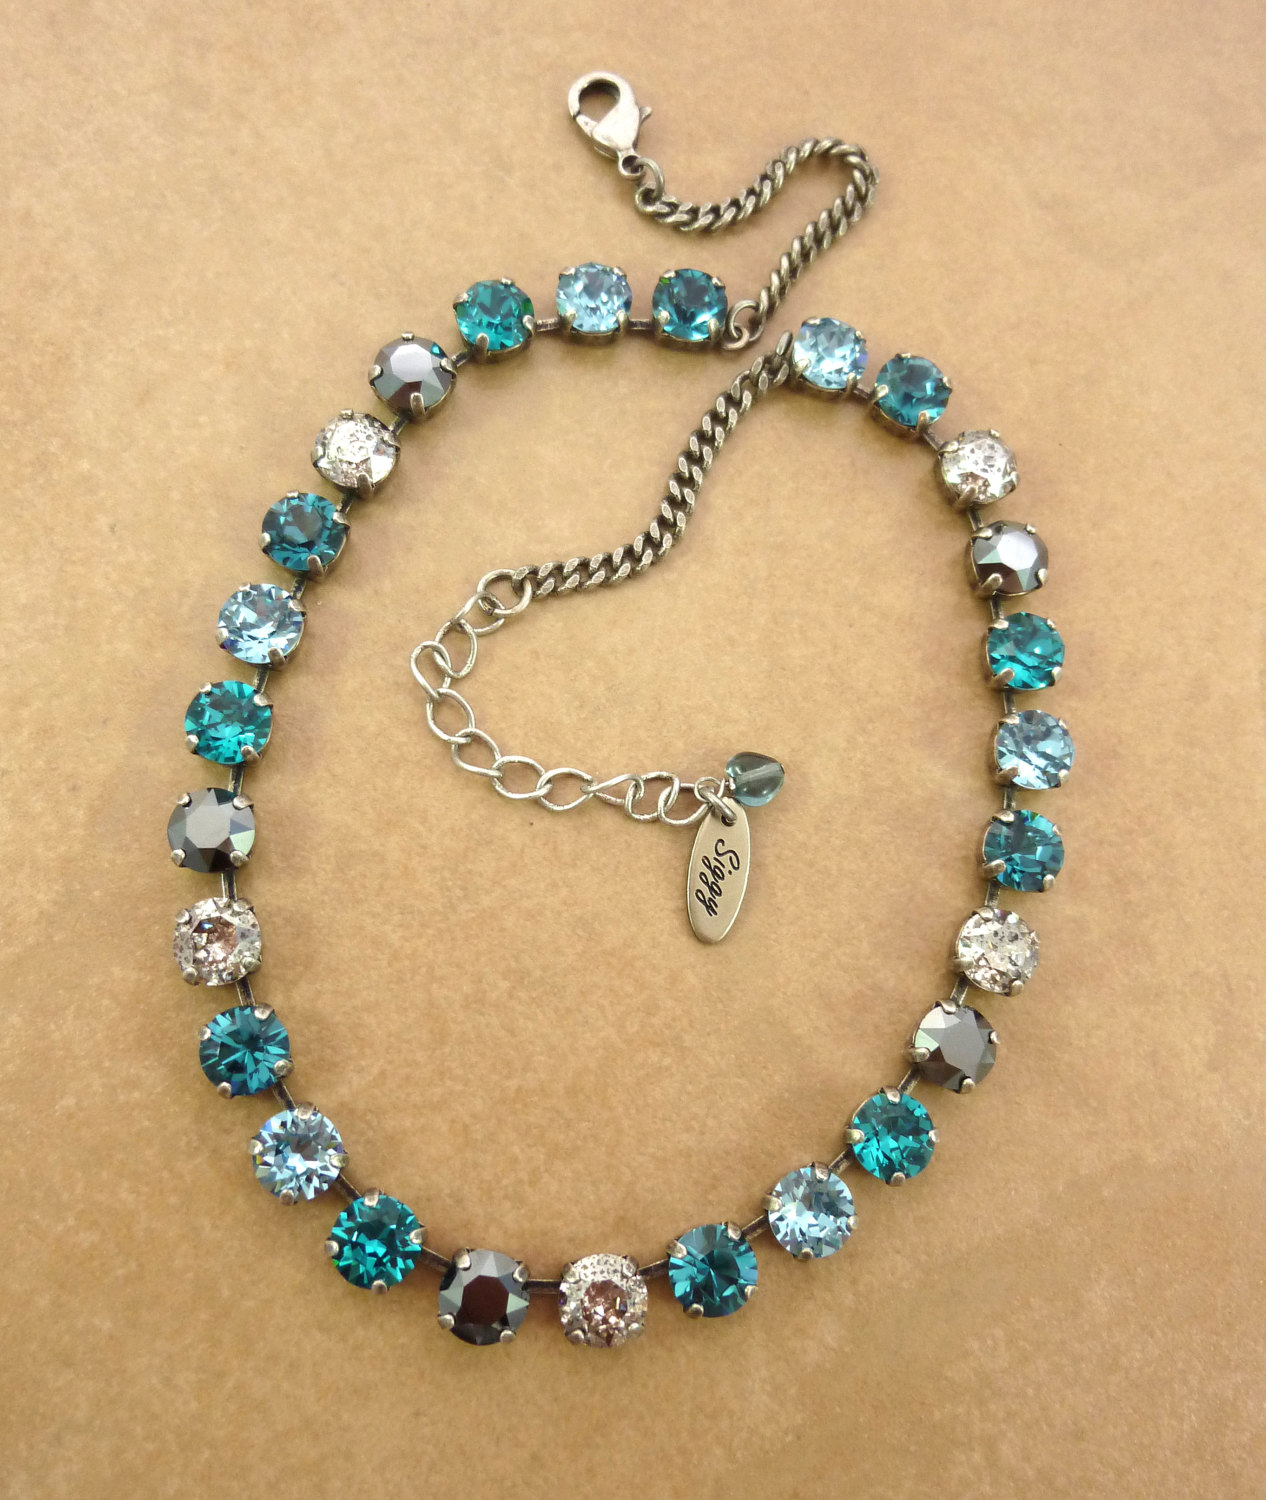 Swarovski crystal necklace, aqua, hematite, new patina crystals, 8mm designer inspired crystal necklace